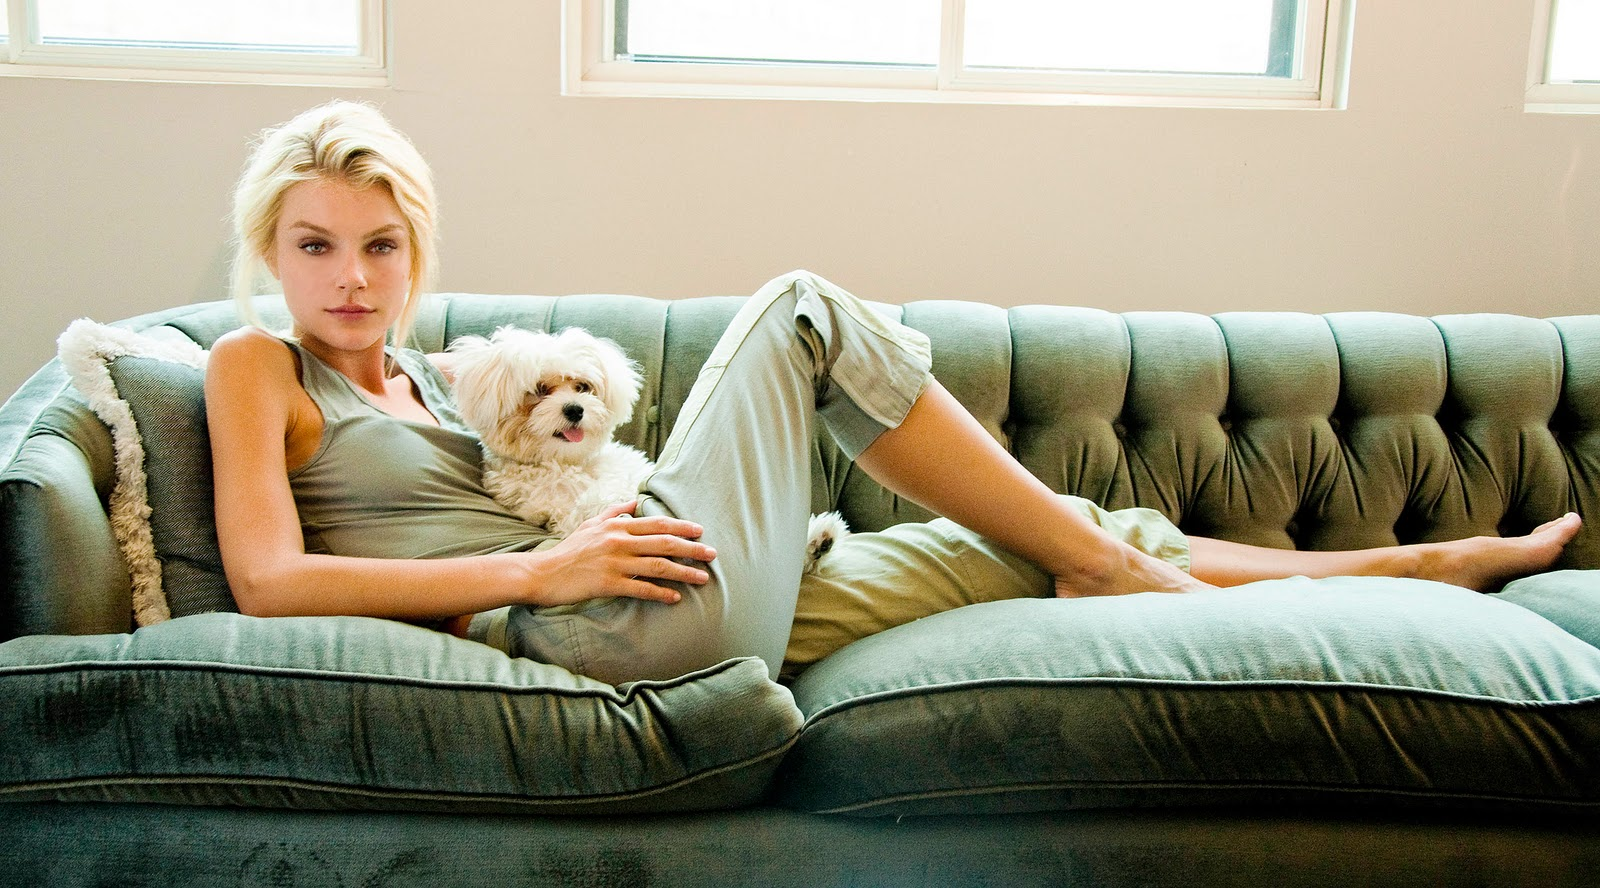 Lauren Conrad Fall Wallpaper Eat Browse And Love By E At Home With Jessica Stam